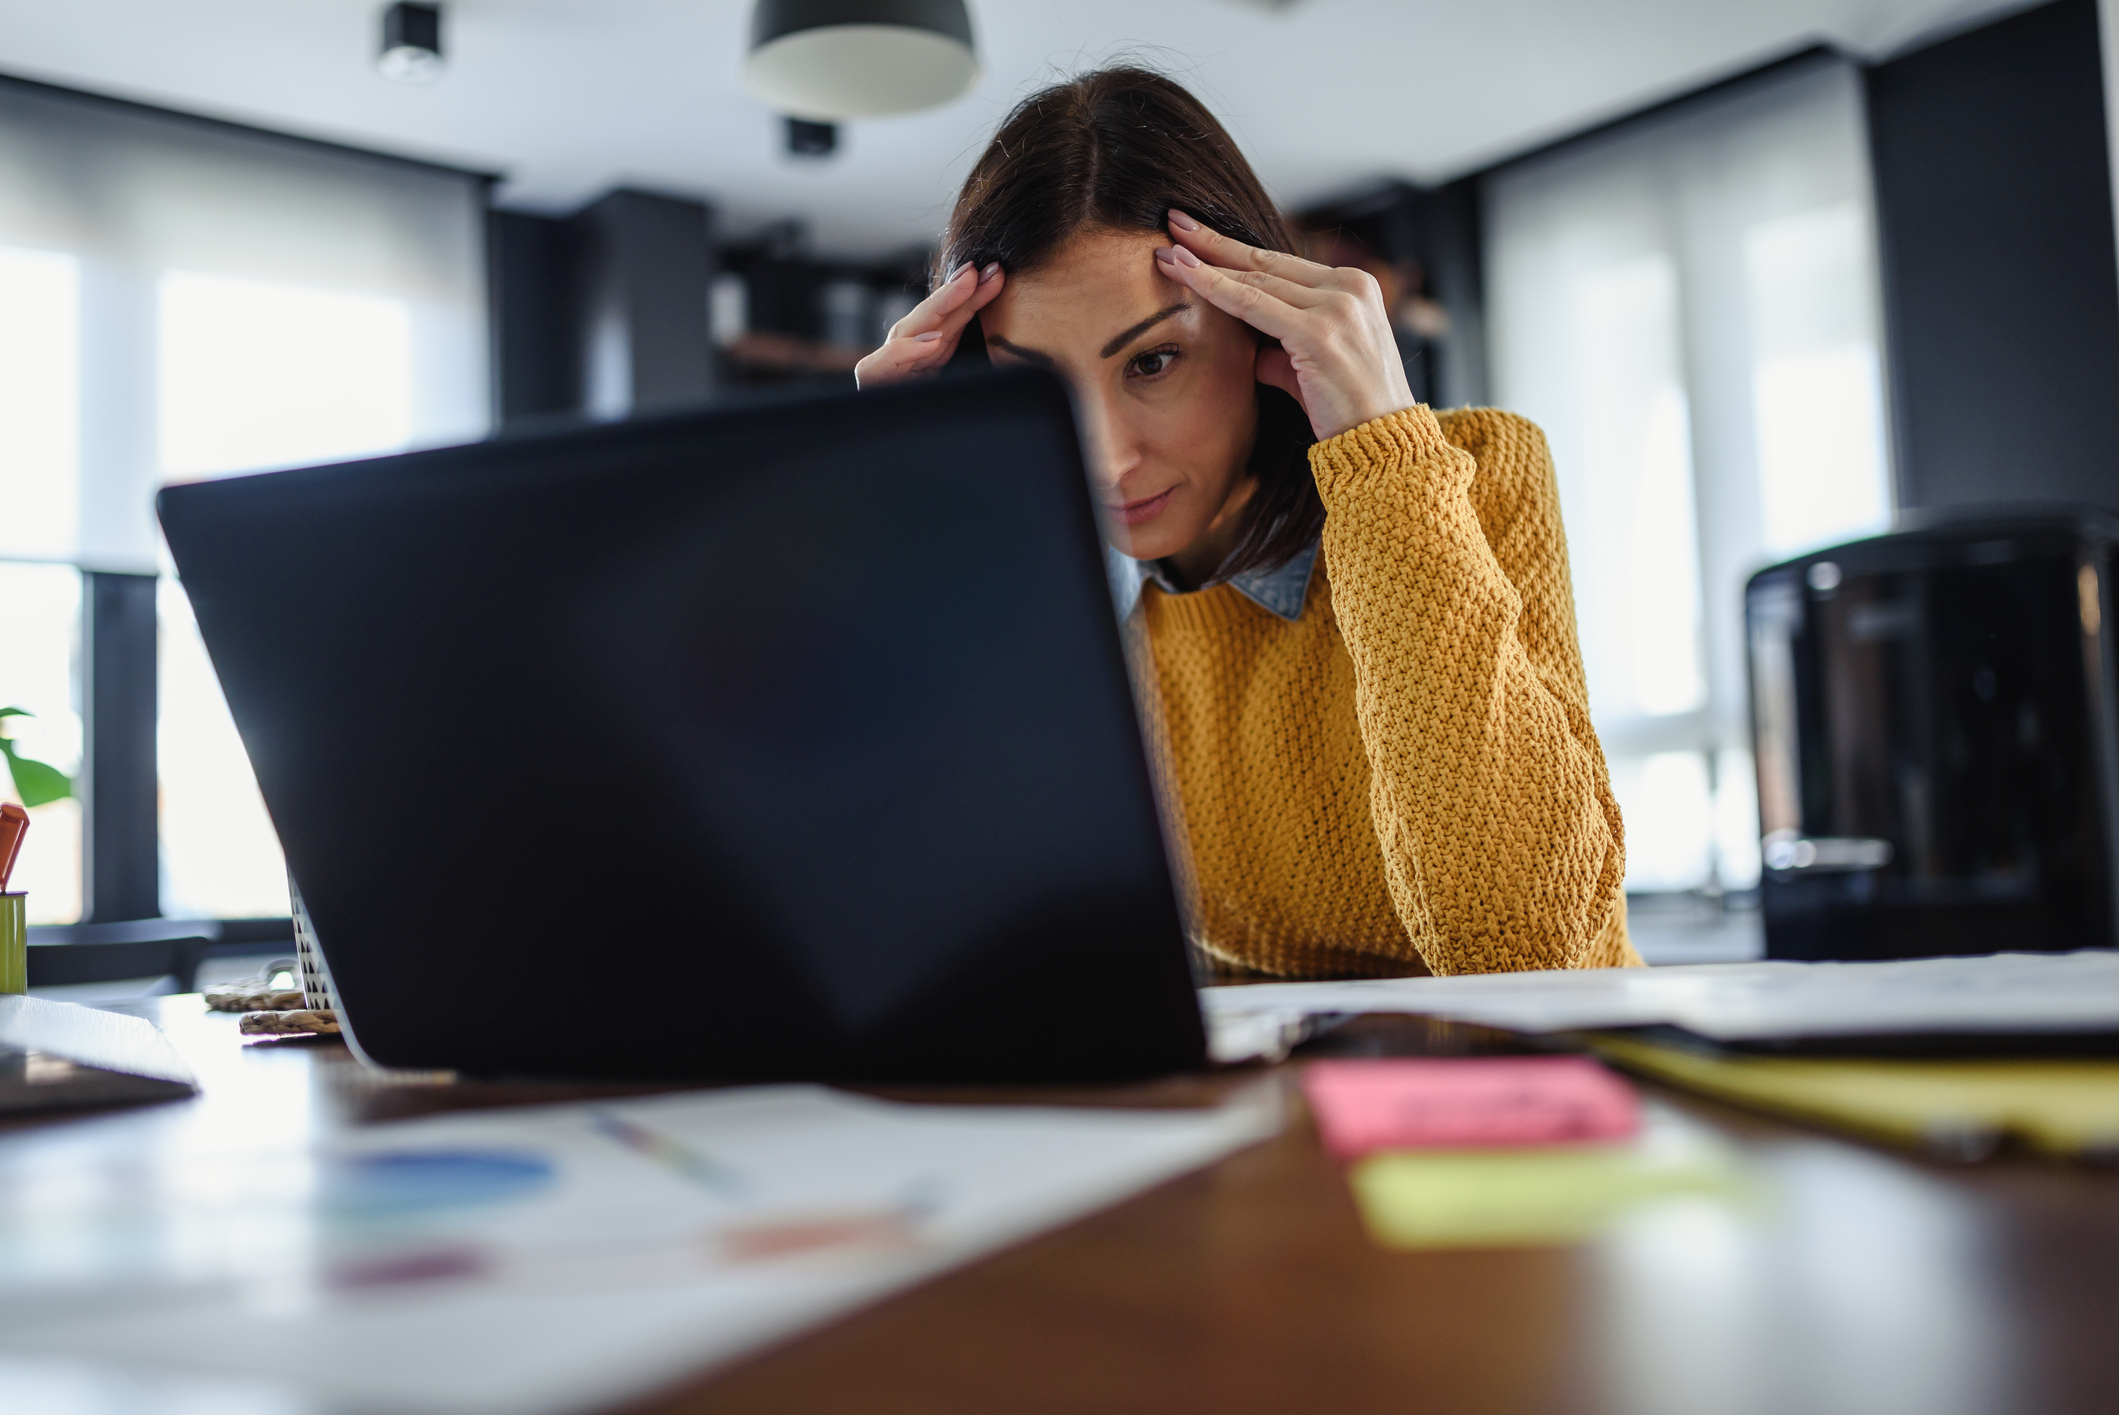 Stressed Out About Money? A Financial Therapist Might Help